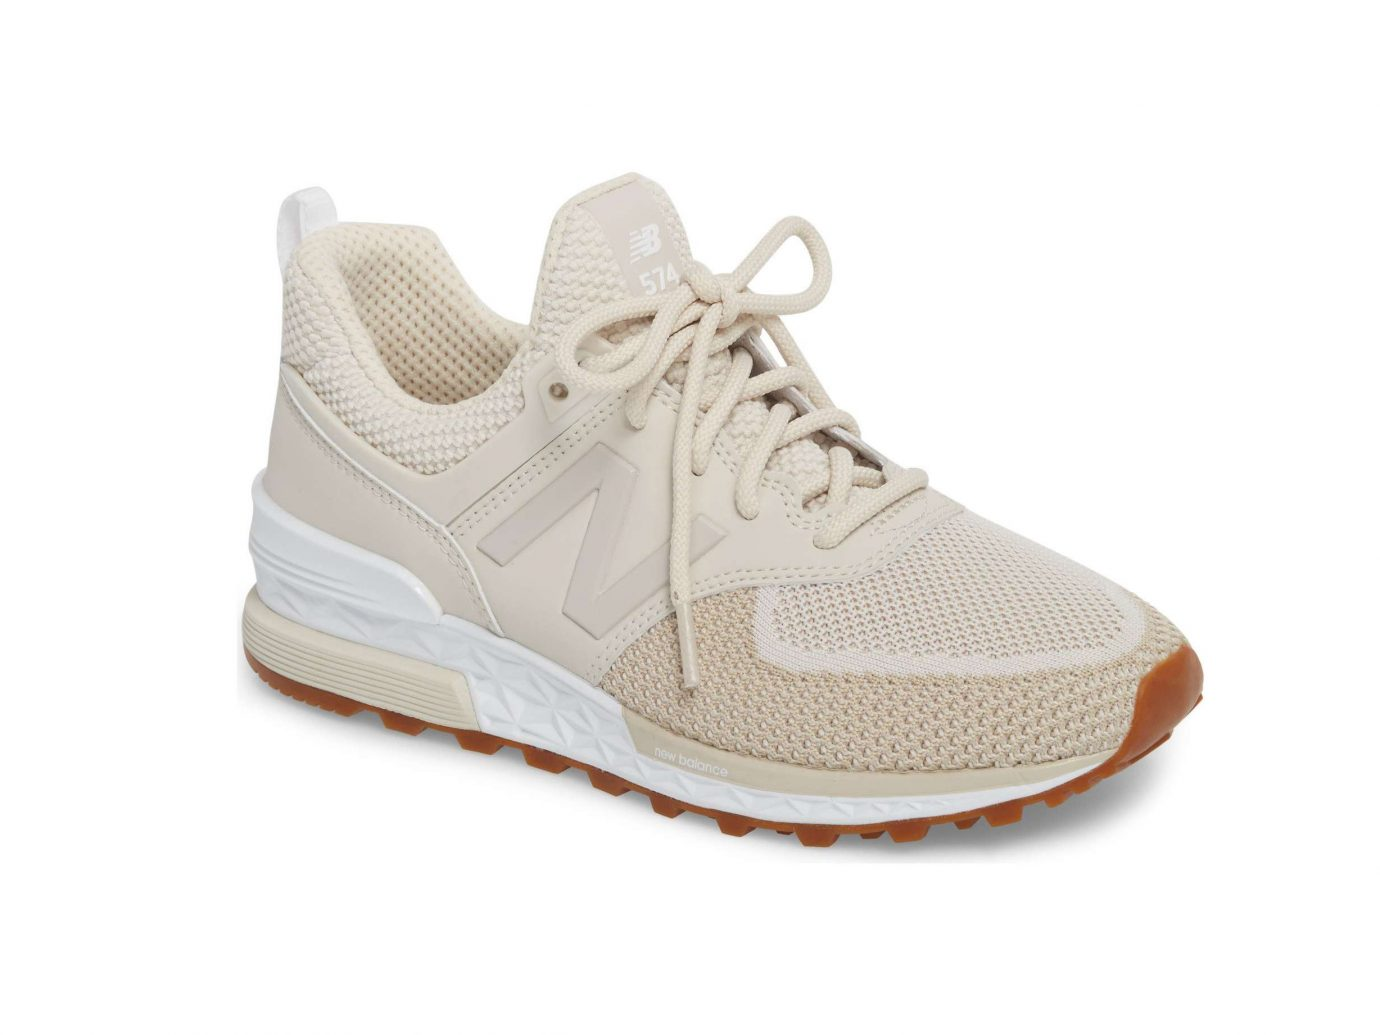 Health + Wellness Style + Design Travel Shop footwear white shoe walking shoe sportswear running shoe beige outdoor shoe product cross training shoe tennis shoe product design sneakers athletic shoe